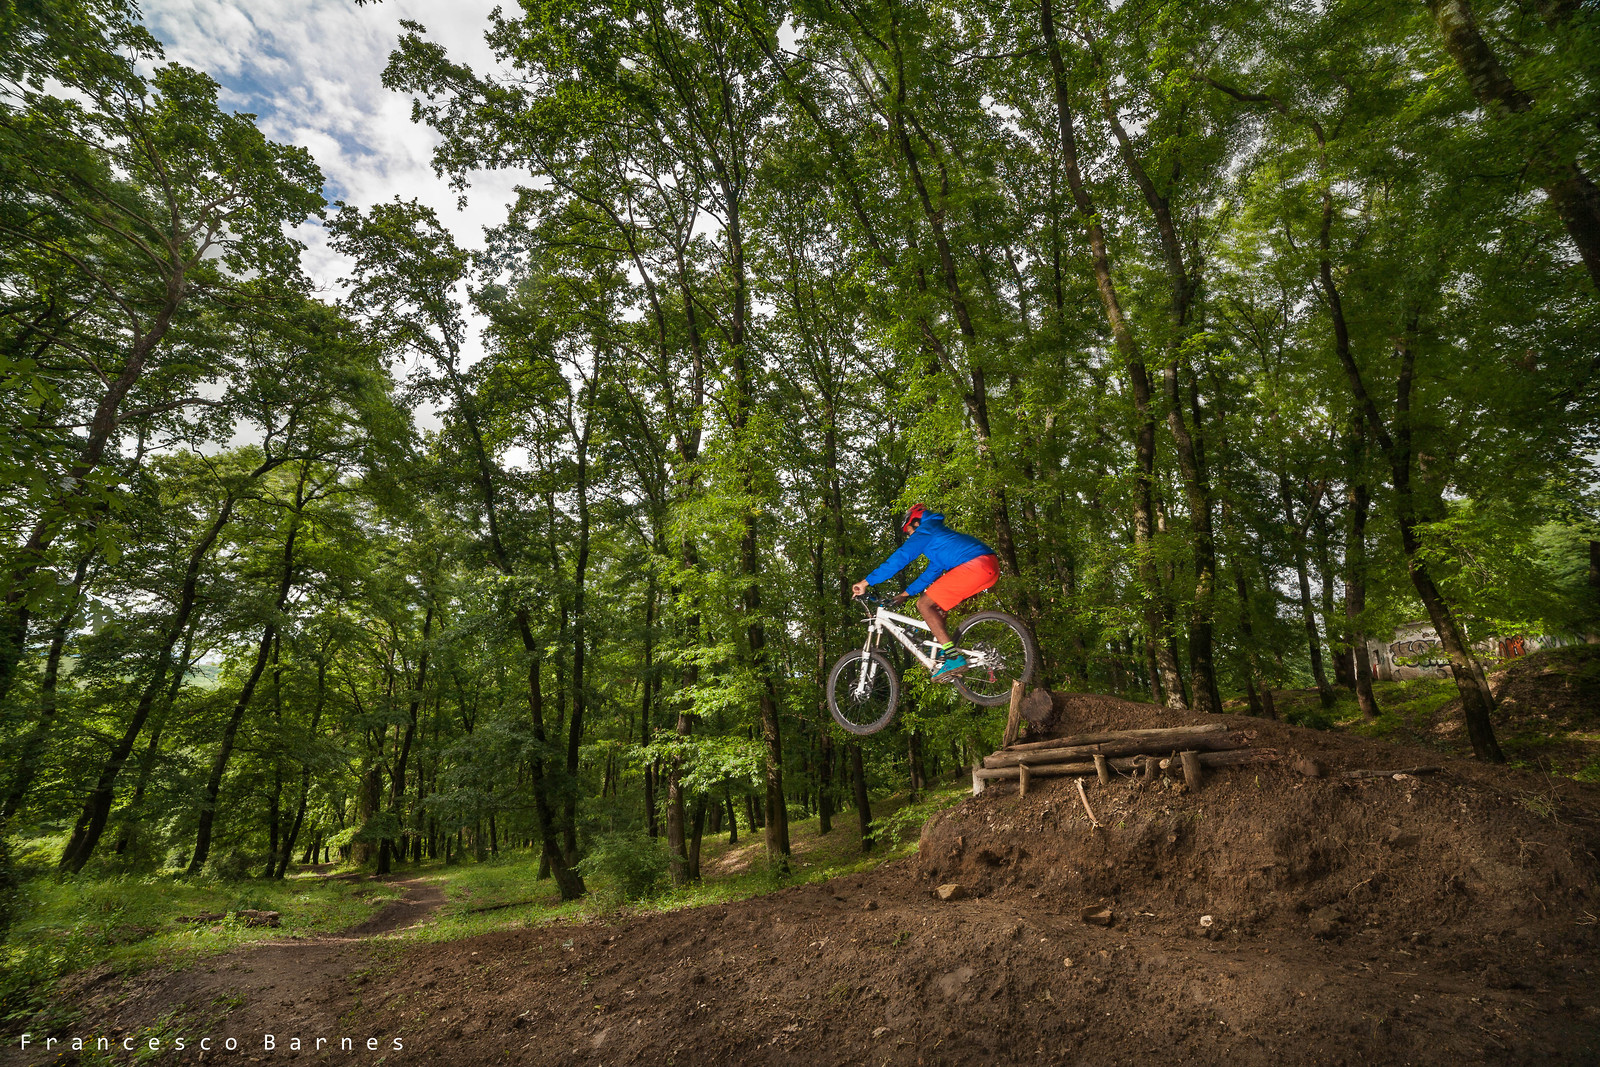 I can fly ! - Gladiax87 - Mountain Biking Pictures - Vital MTB